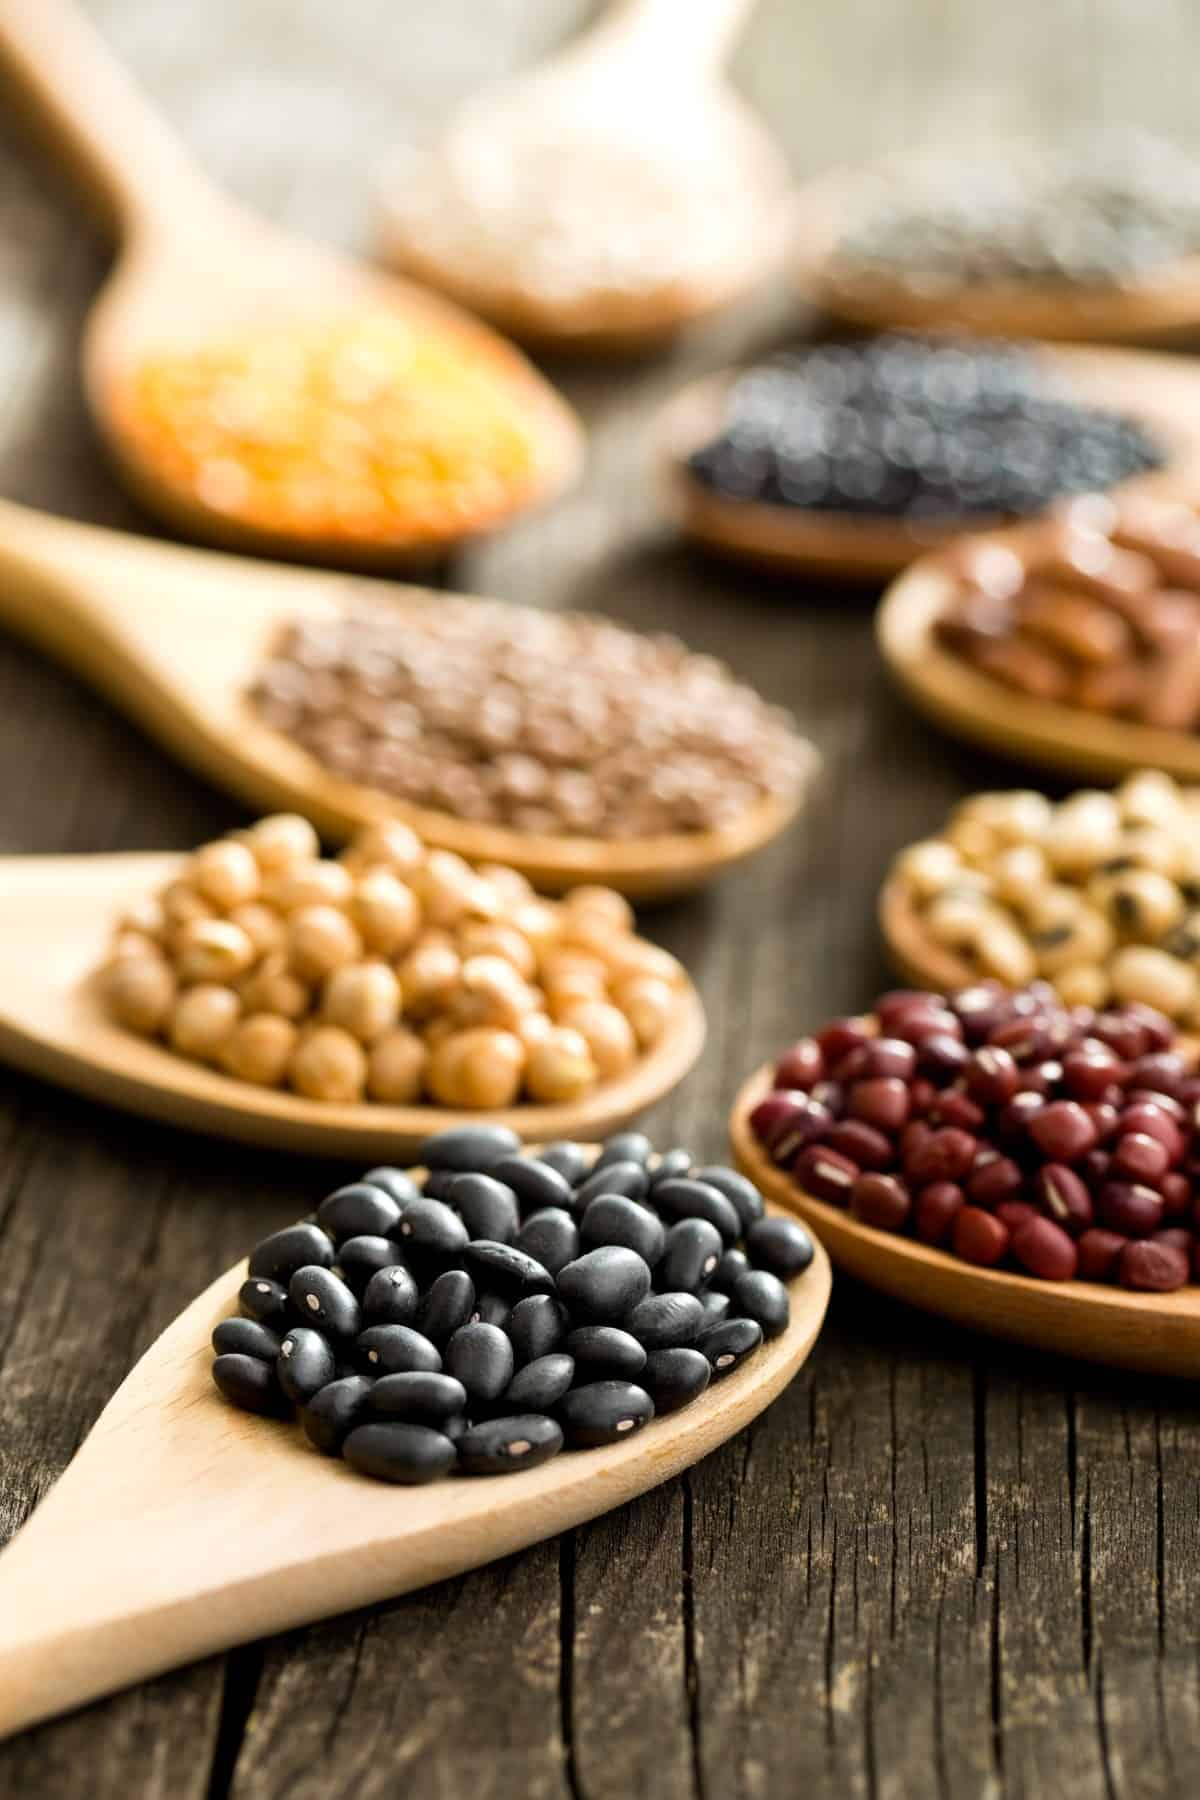 Assorted dry beans on wooden spoons on wood table